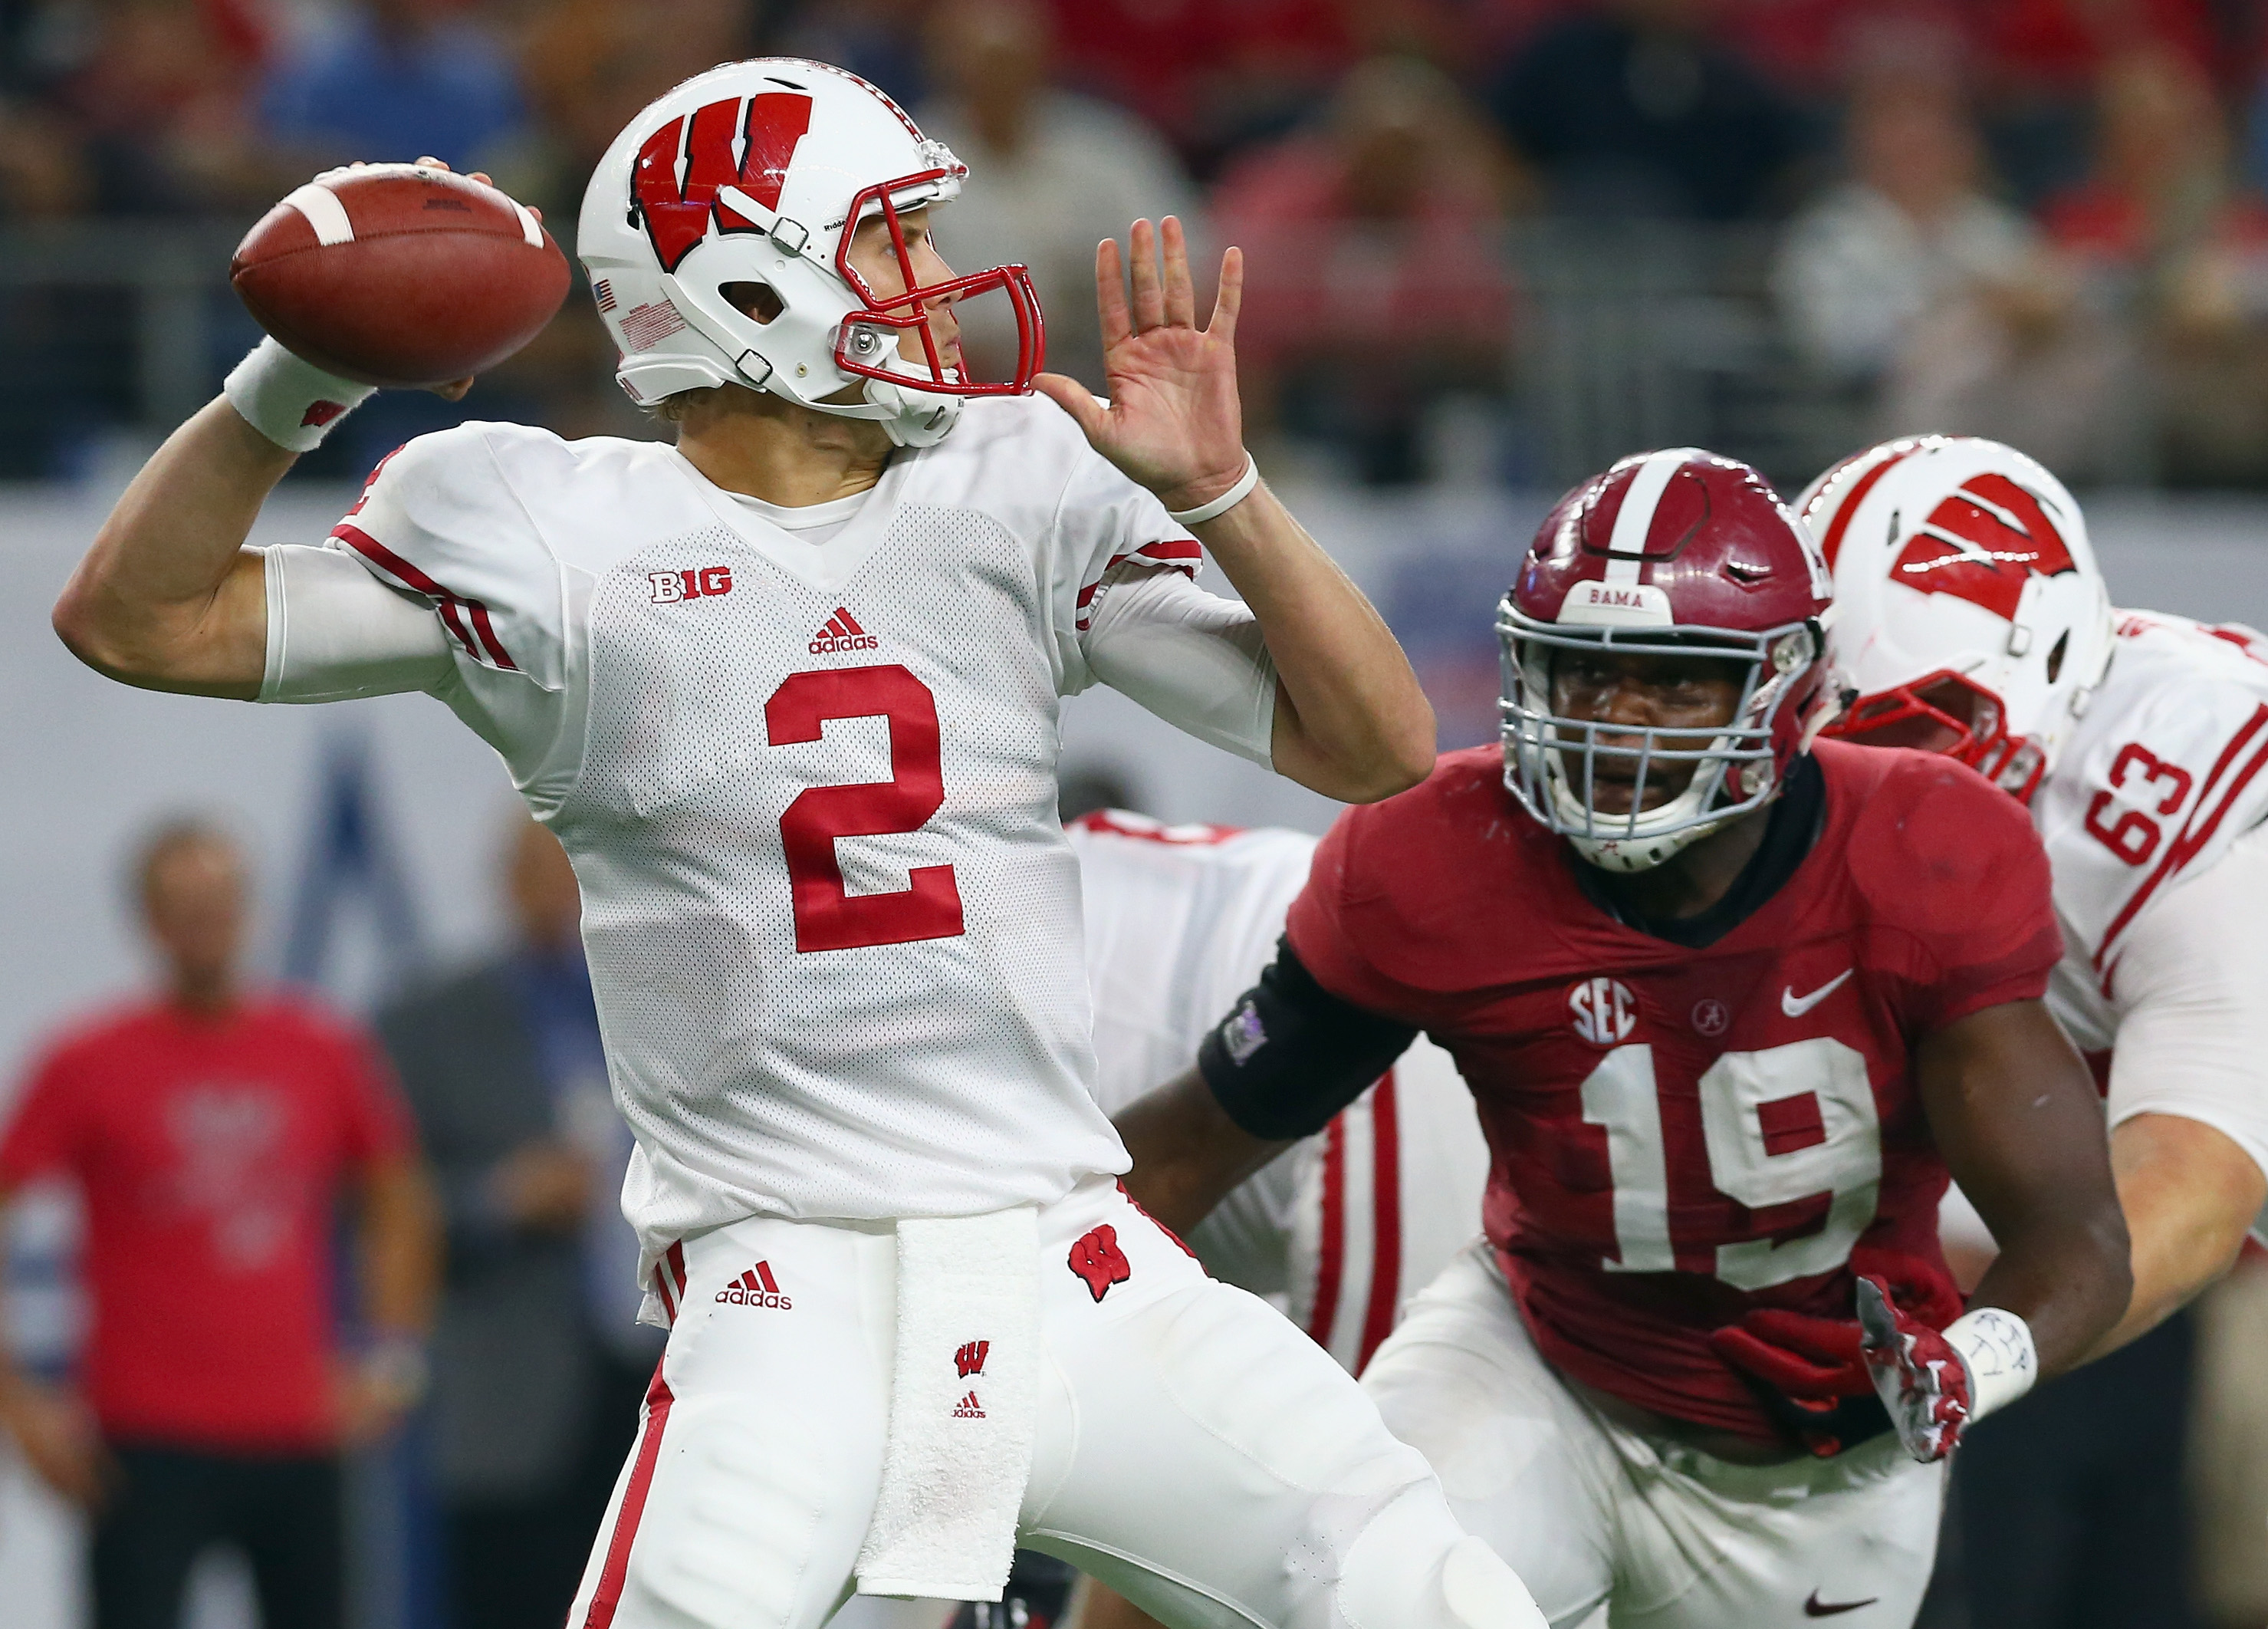 Joel Stave of Wisconsin looks for an open receiver under pressure from Reggie Ragland of Alabama on Sept. 5, 2015.  (Getty Images)